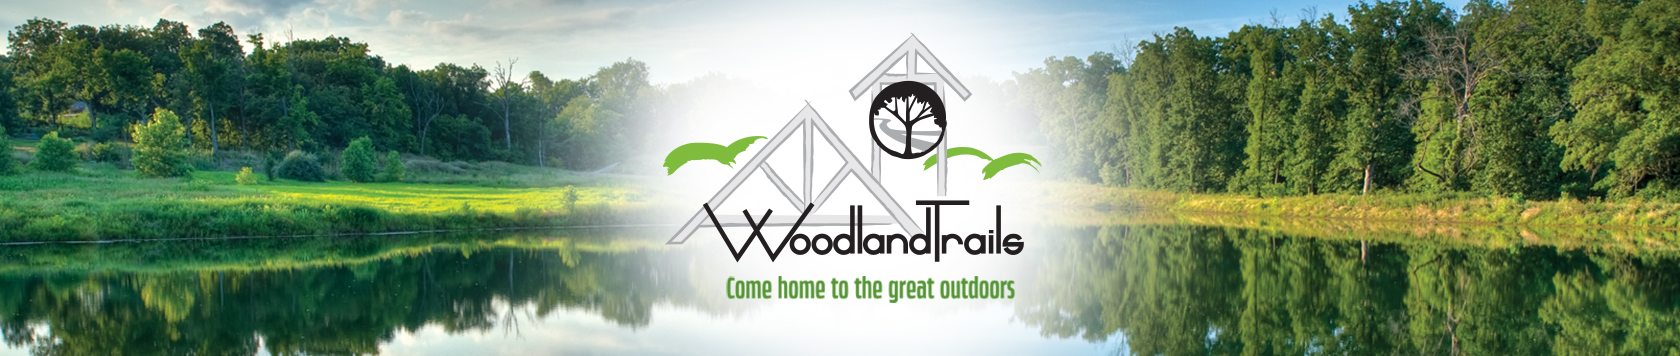 Woodland trails logo banner